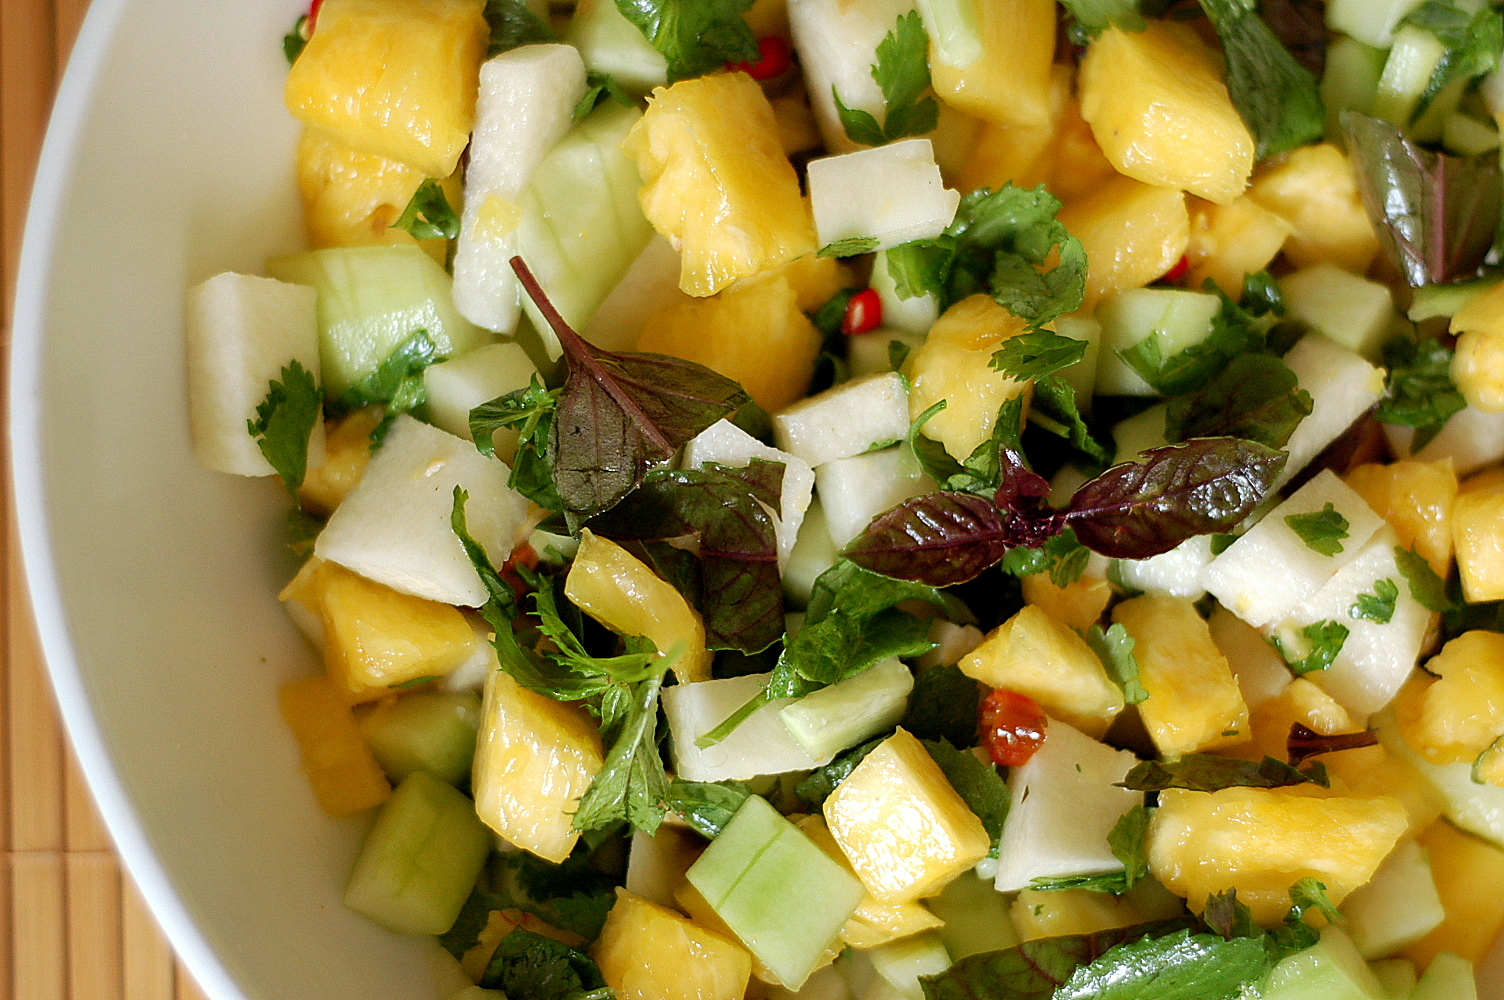 The Grains of Paradise: Jicama, Pineapple, and Cucumber Salad